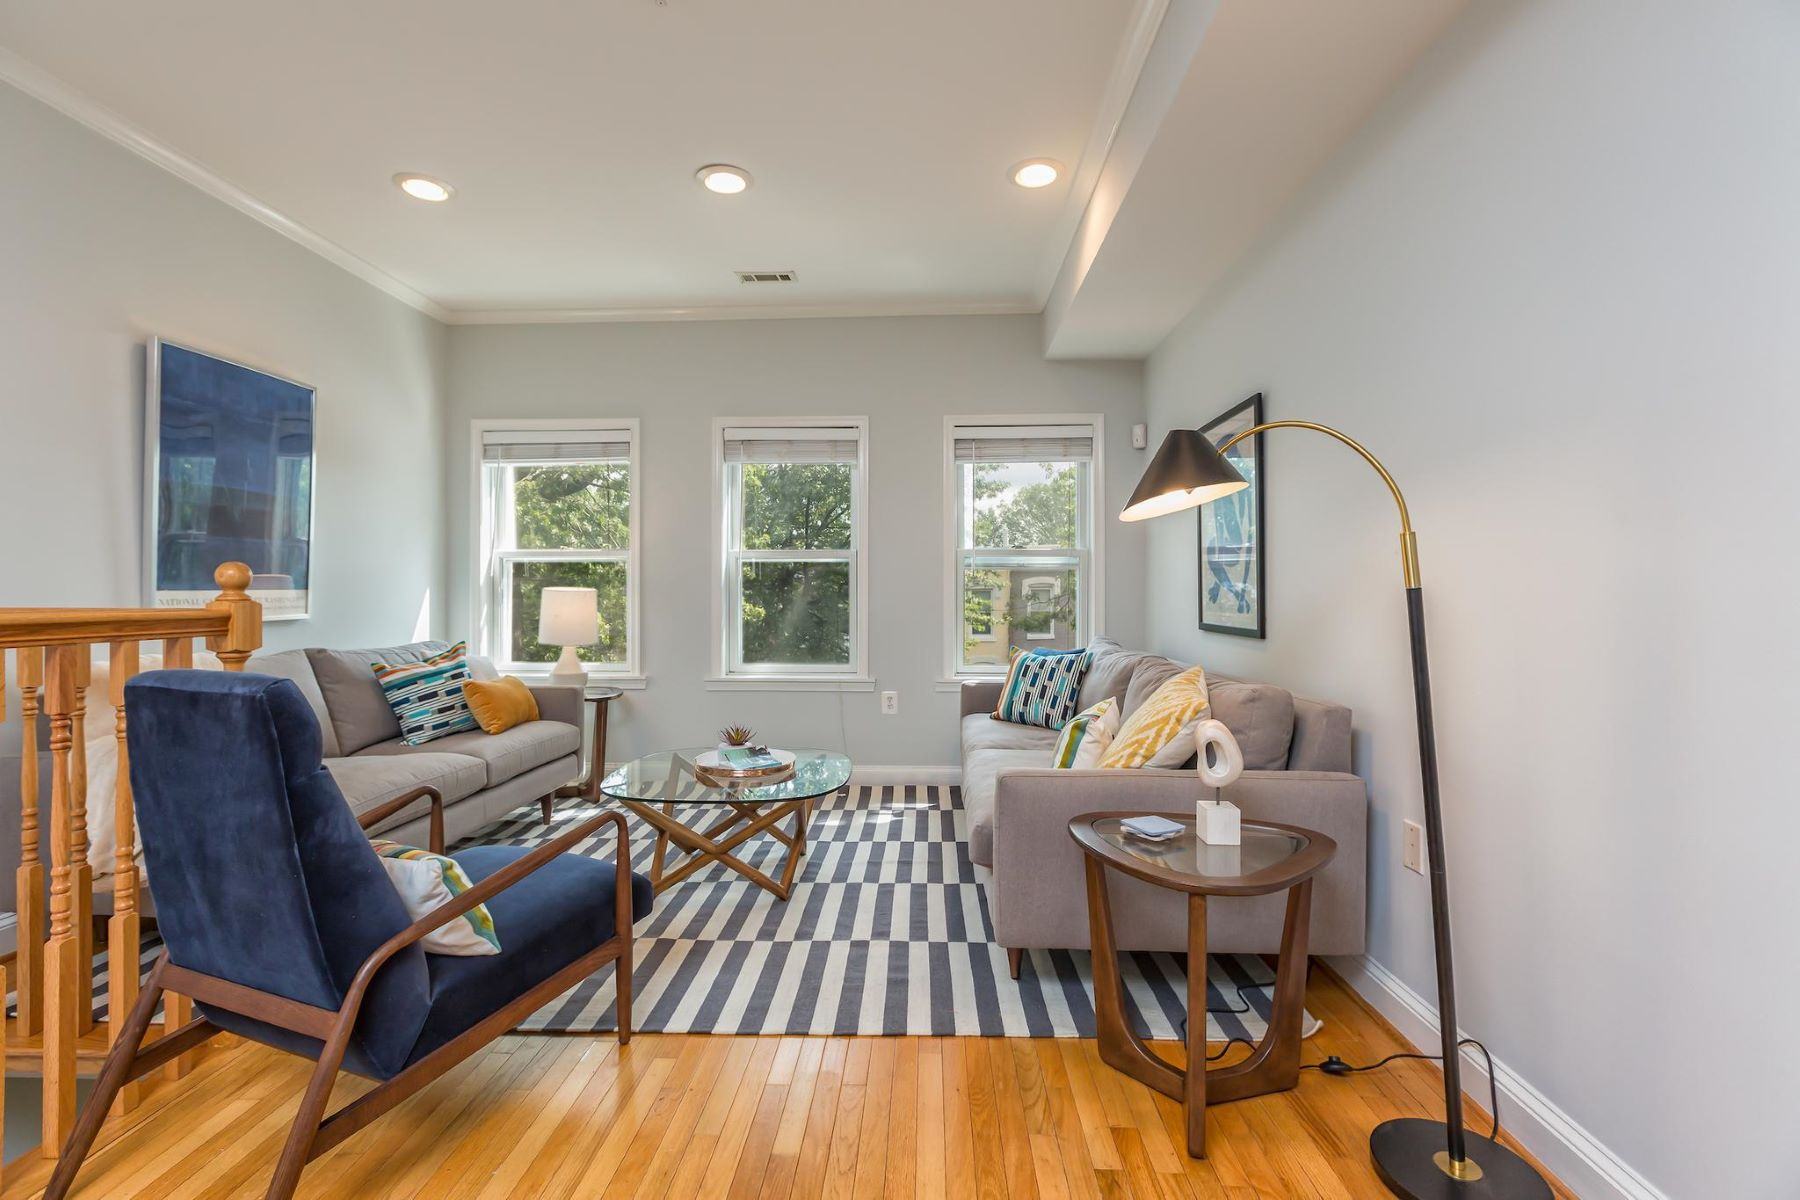 Townhouse for Sale at 1612 5th St NW #2 1612 5th St NW #2 Washington, District Of Columbia 20001 United States